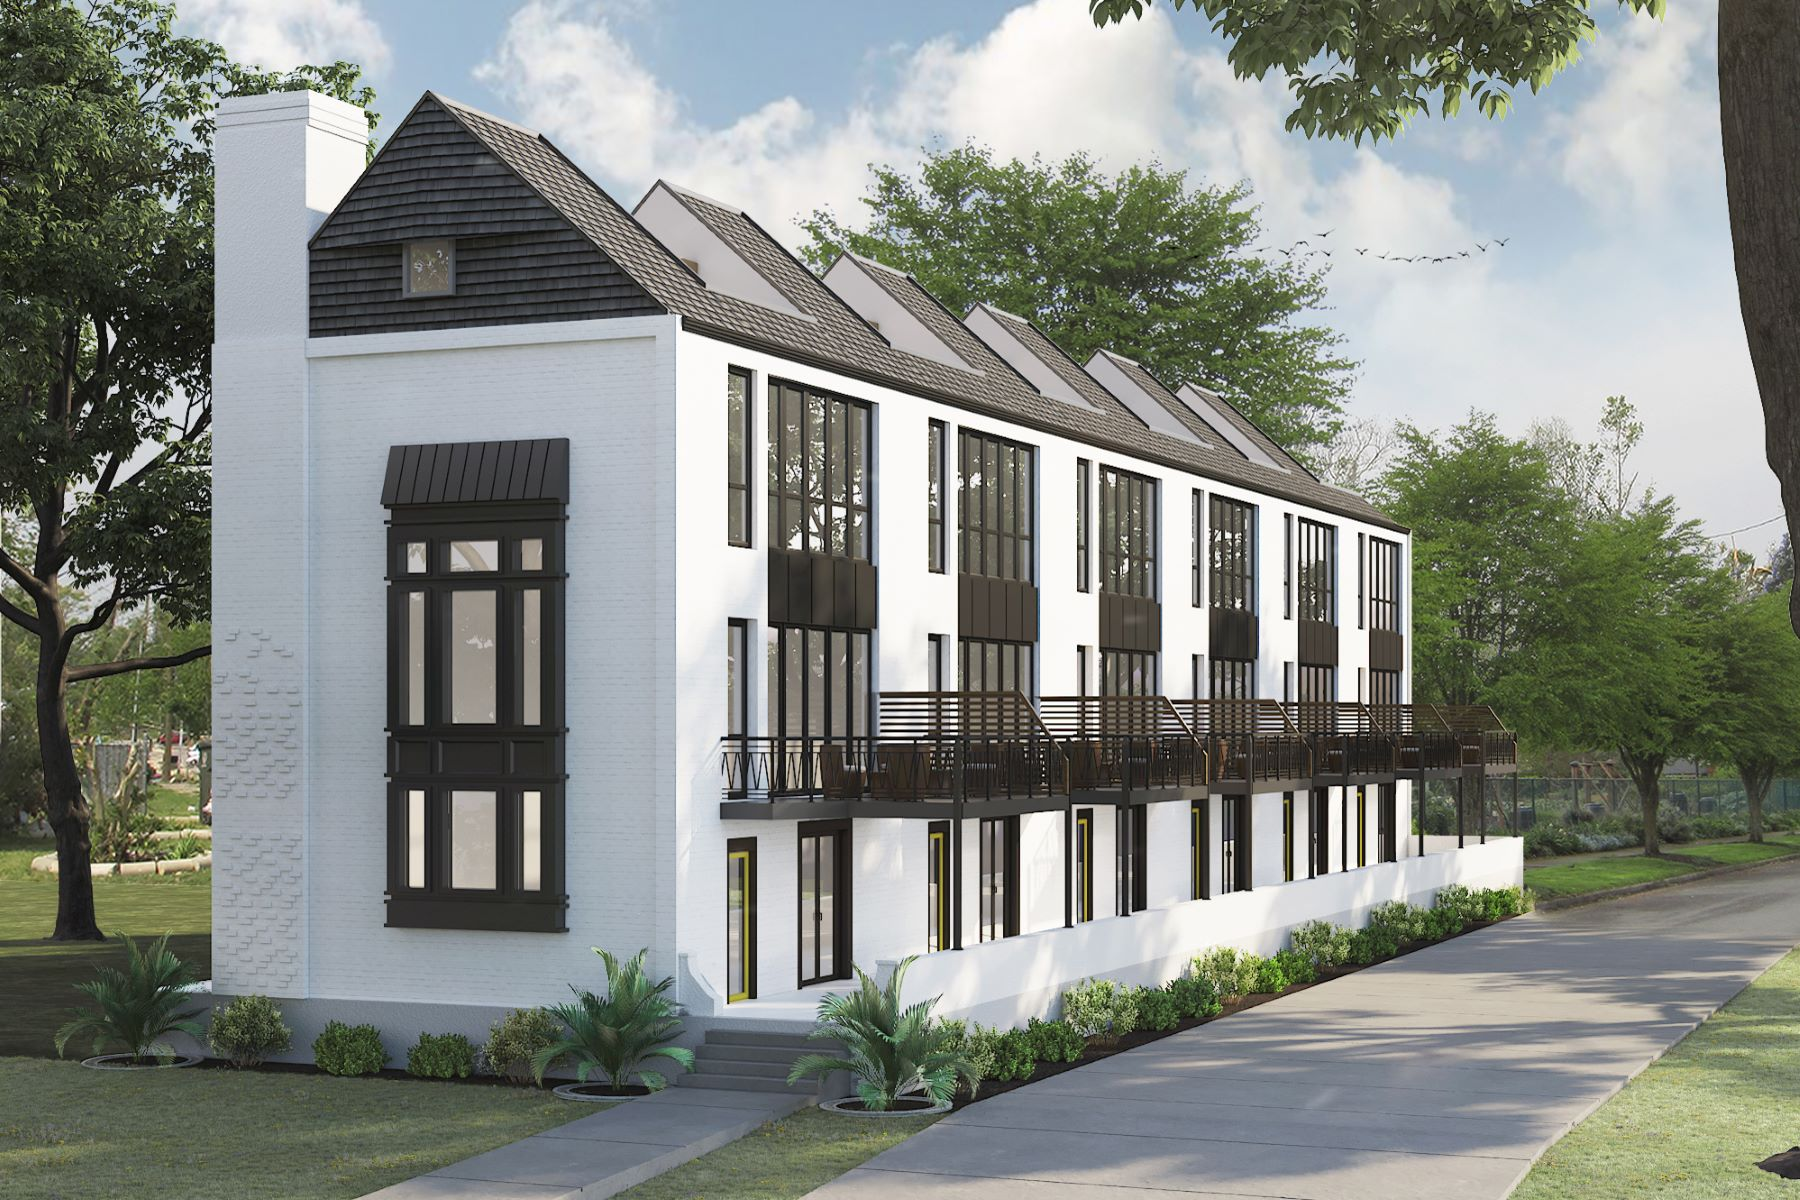 townhouses for Sale at West Village Townhomes - 102 Bedford 4201 West Pine Boulevard 102 - Bedford St. Louis, Missouri 63108 United States